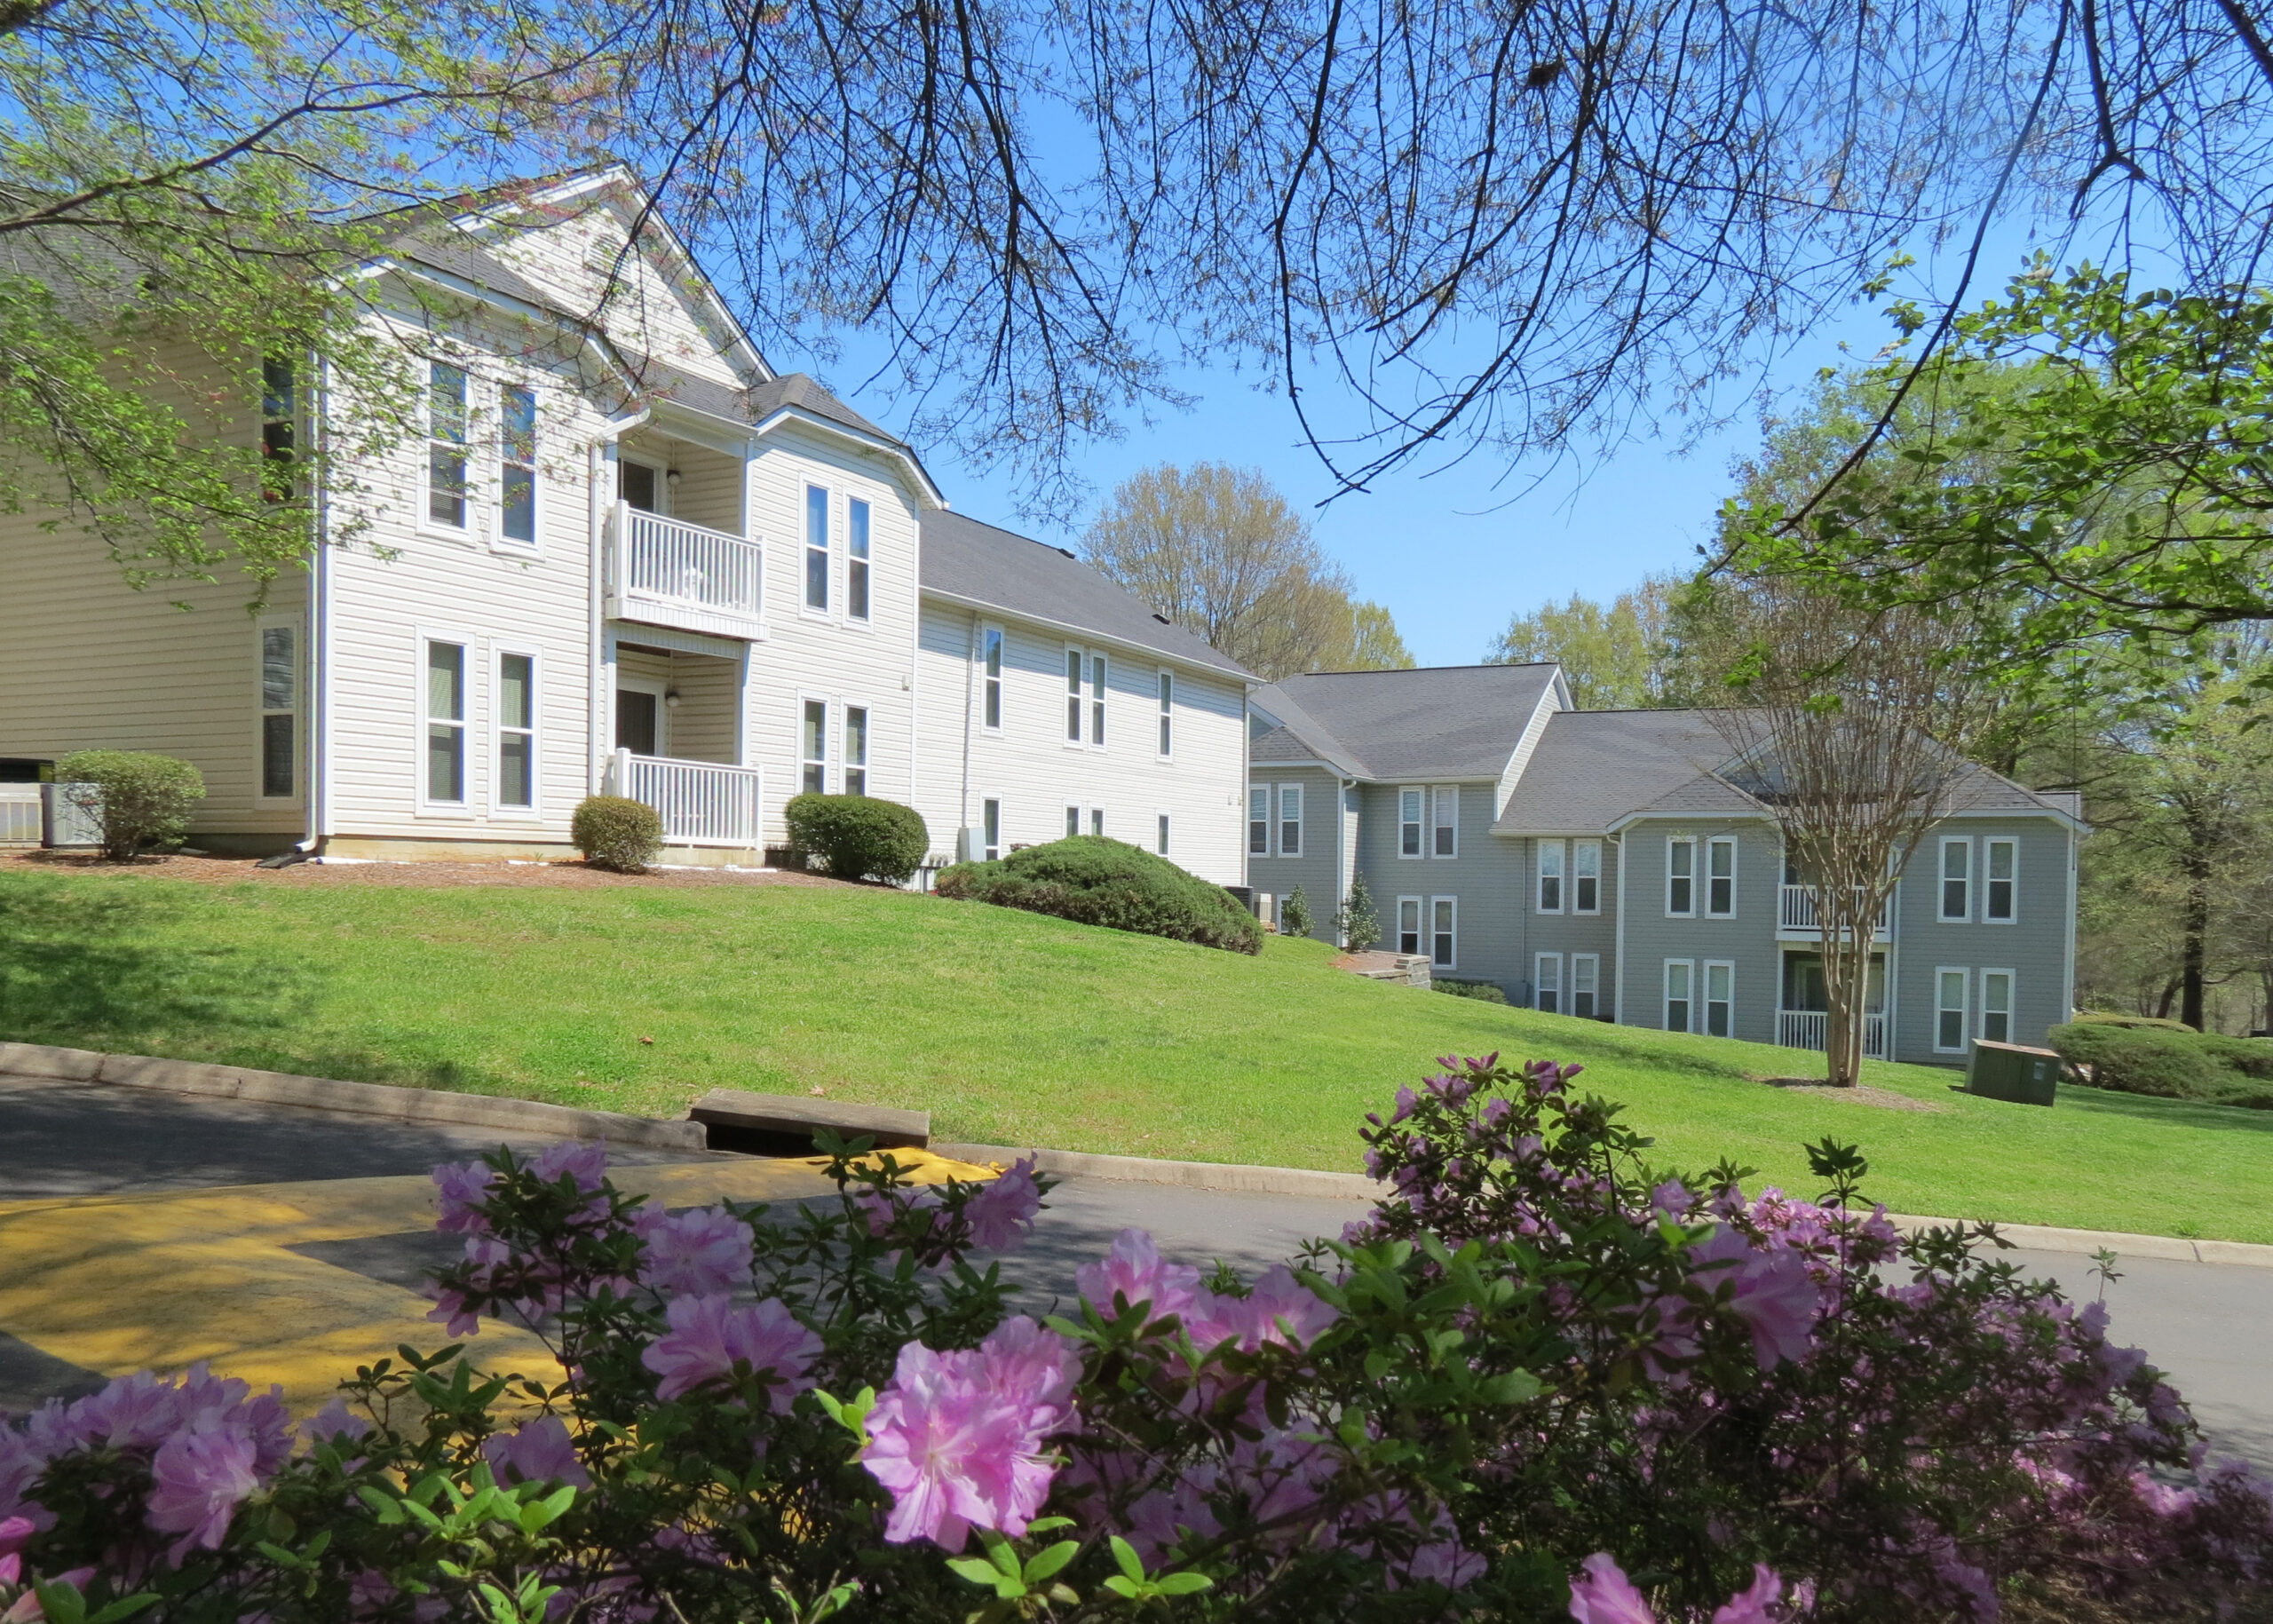 Come Join A Community That Fits Your Lifestyle At Fourth Creek Landing Apartments In Statesville NC!